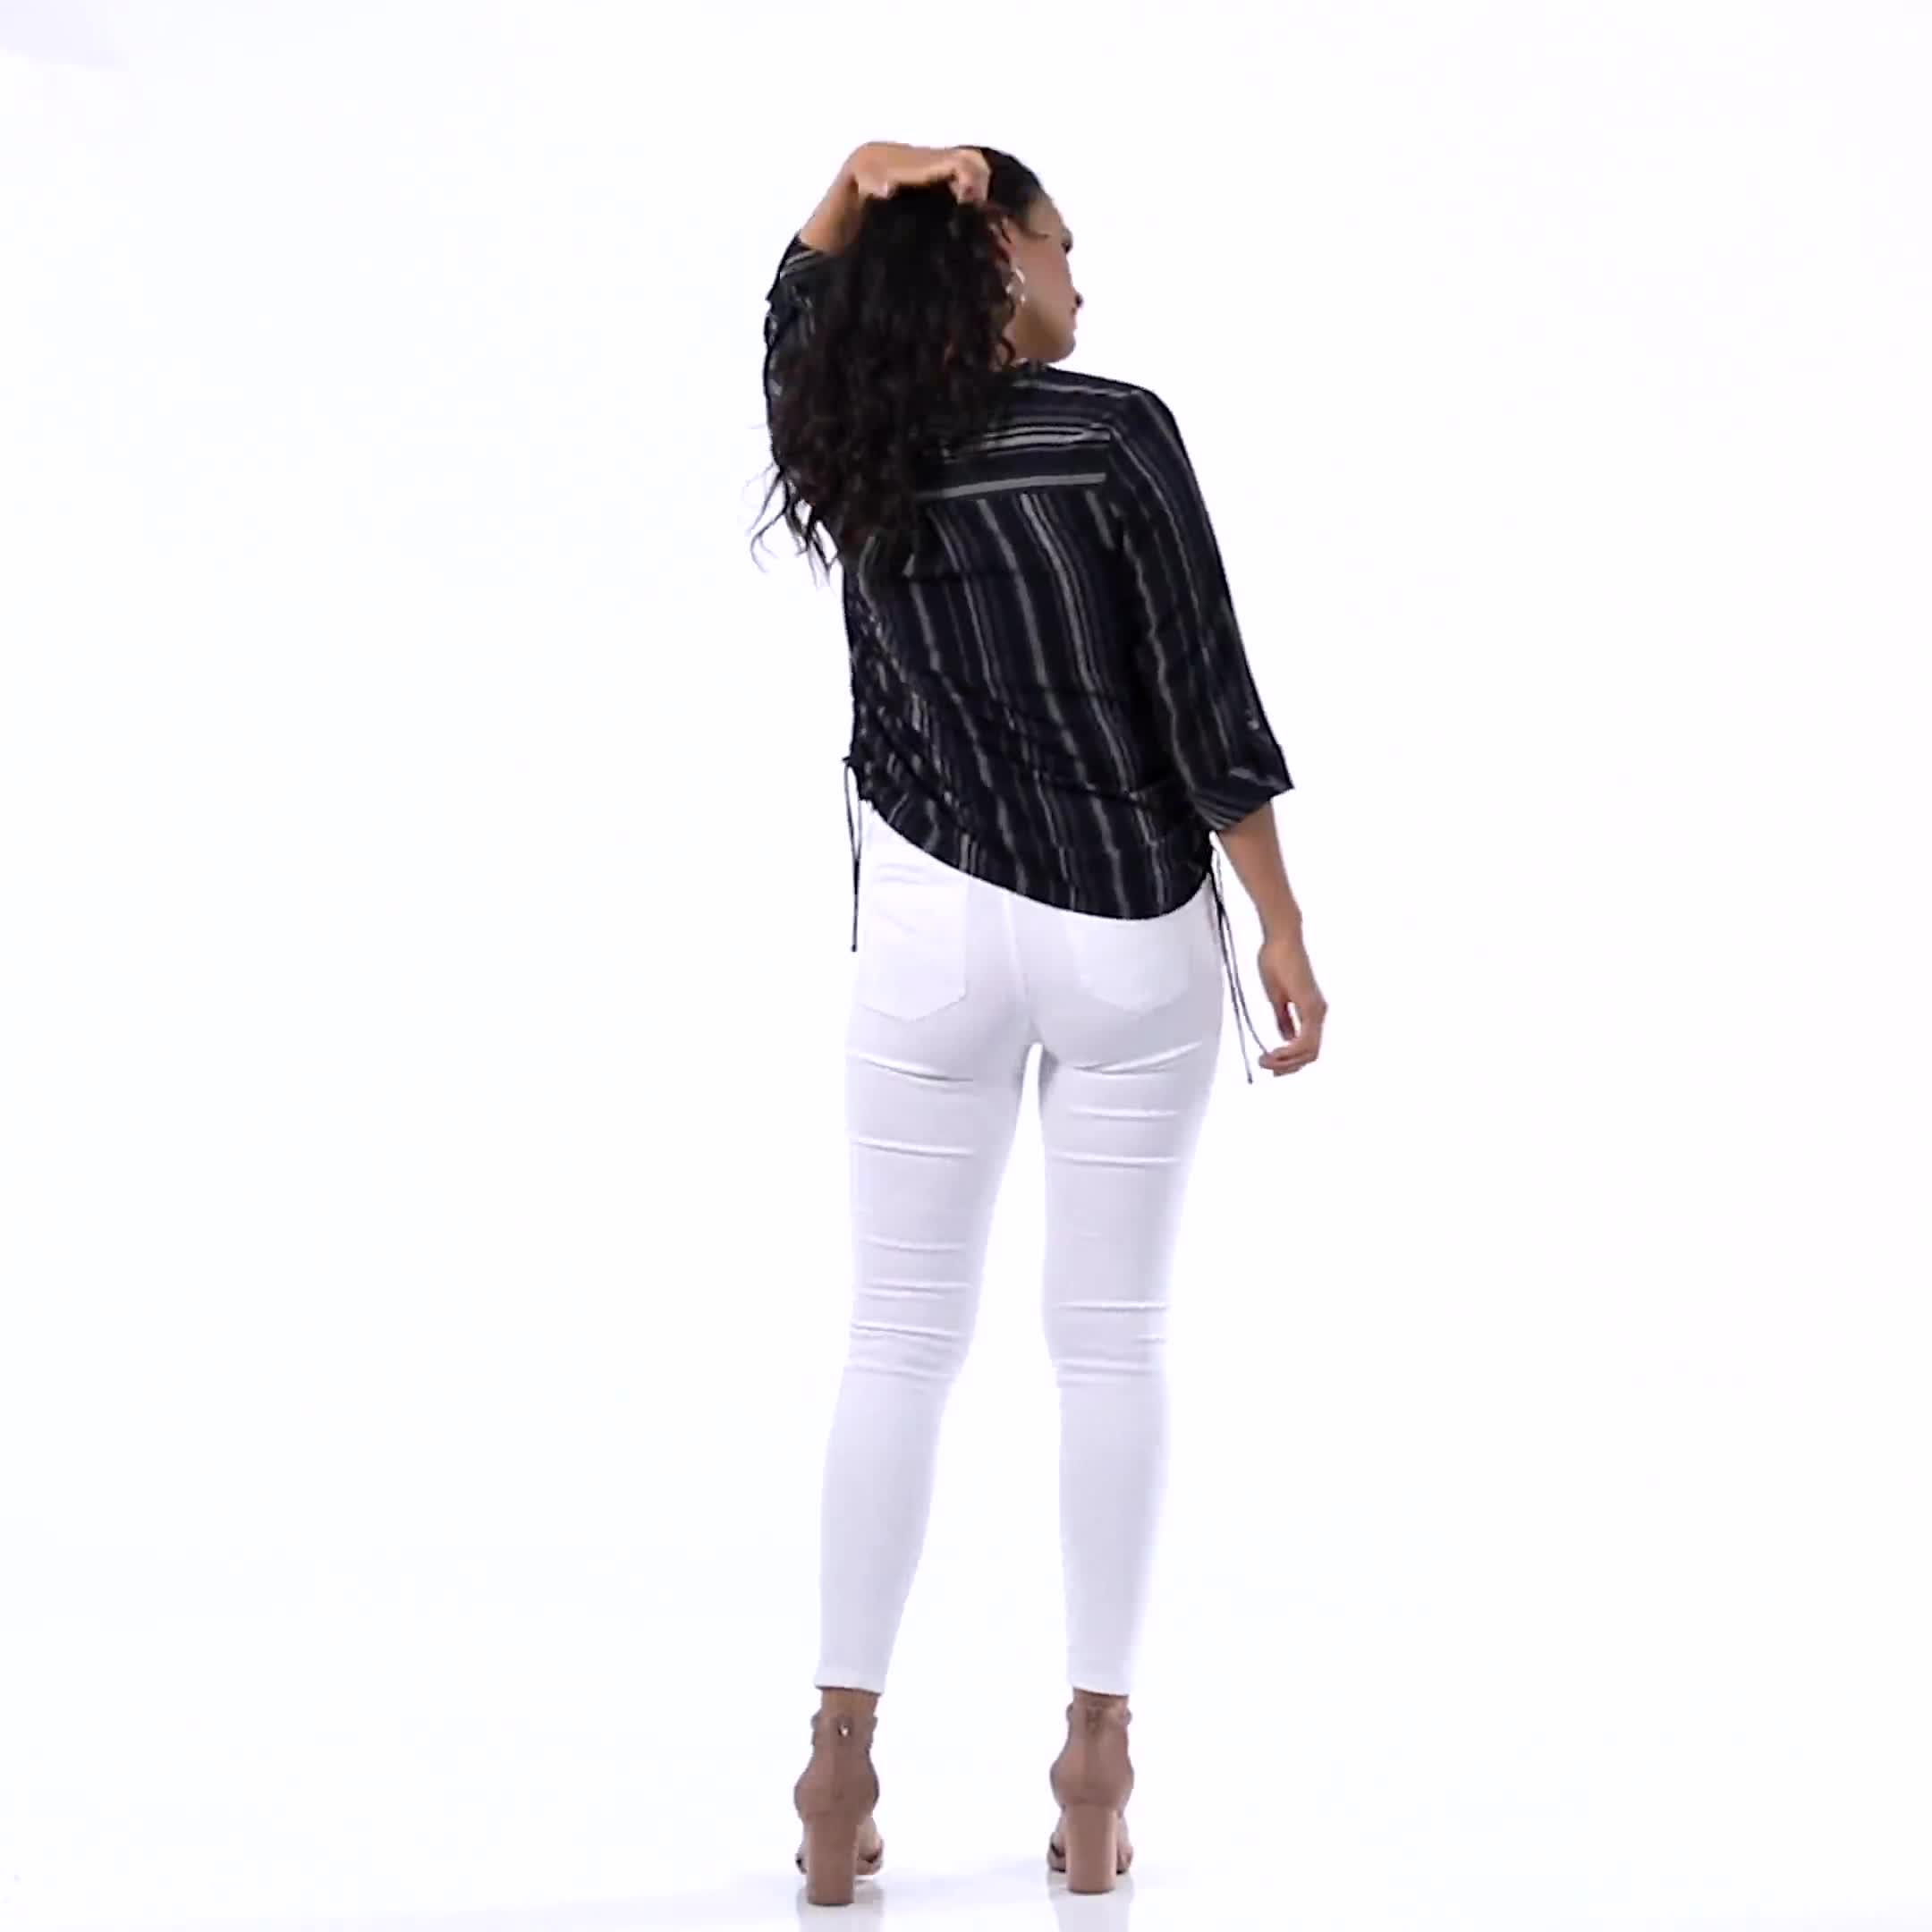 Mid Rise 5 Pocket Goddess Fit Solution Jeans - Video